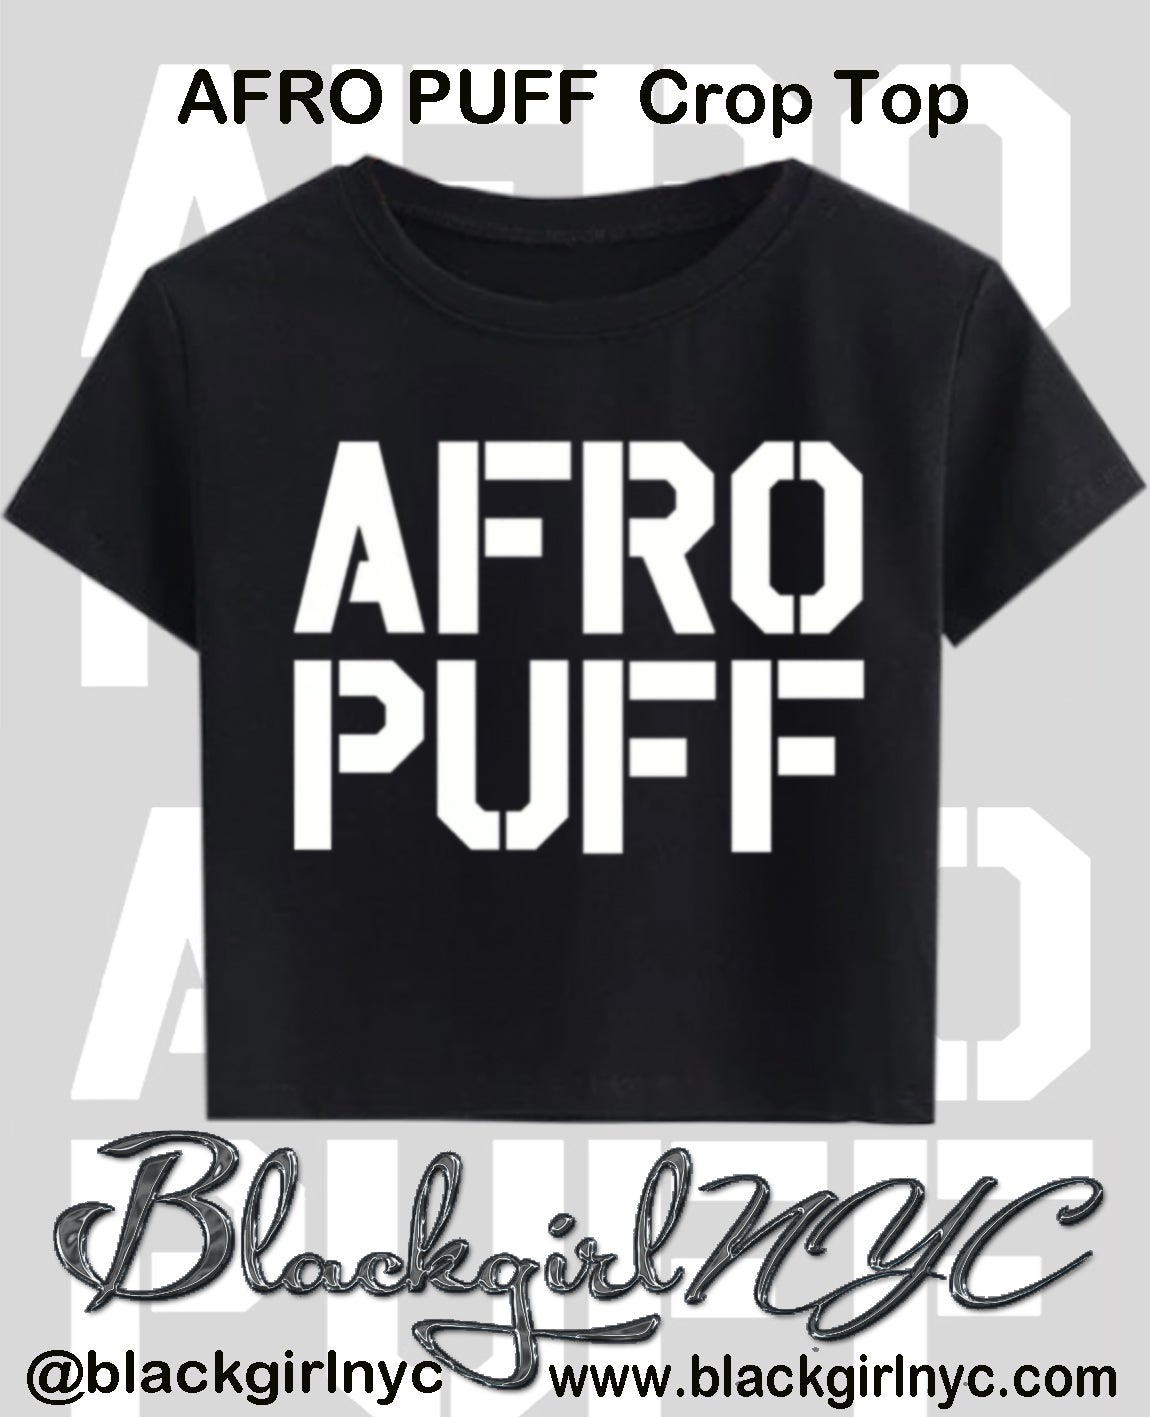 Image of AFRO PUFF punky Crop Top Tee